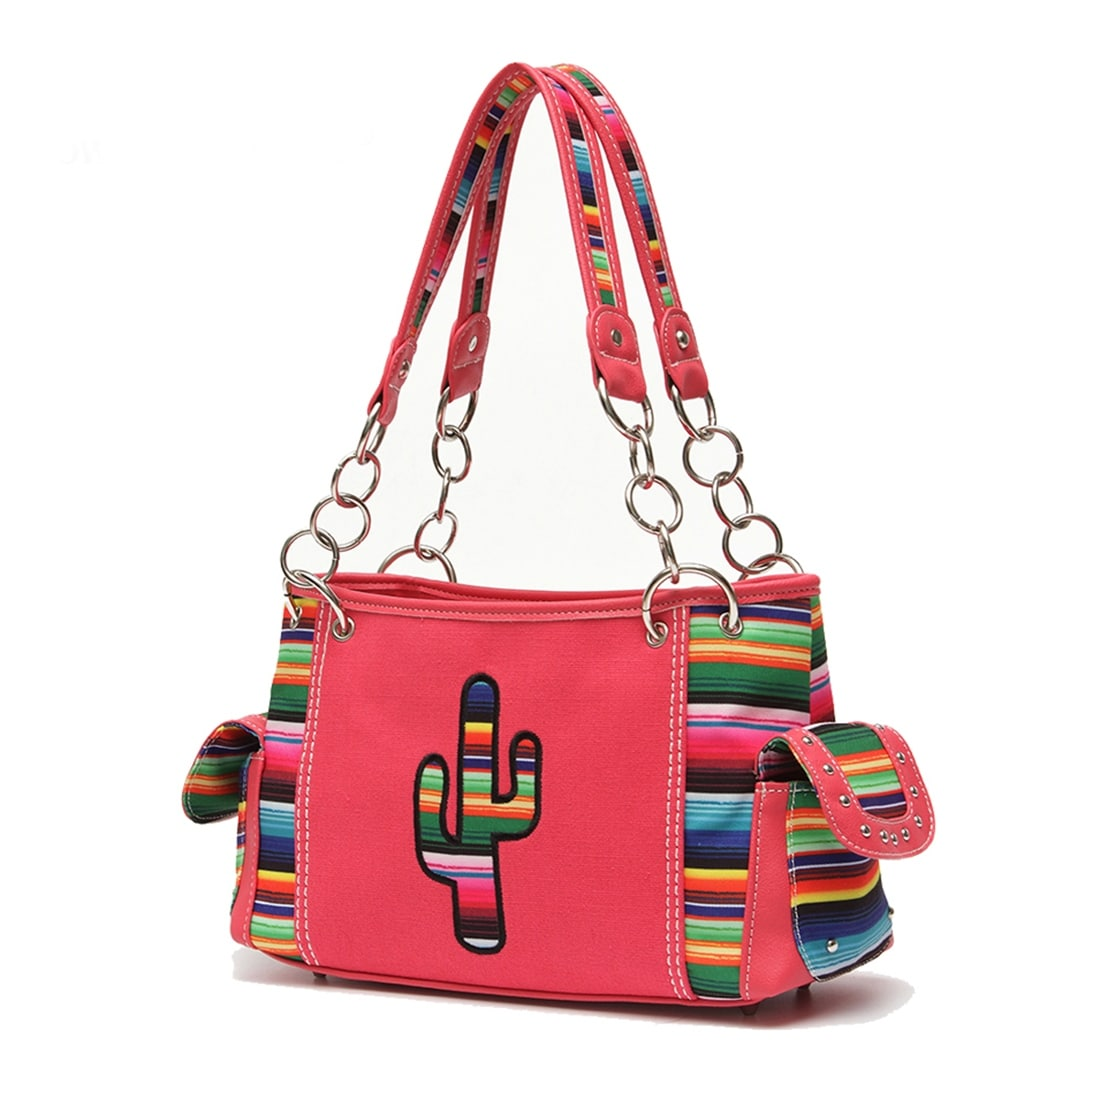 8a6066aadf Shop colorful serape strip embroidered cactus concealed carry purse free  shipping on orders over jpg 1100x1100